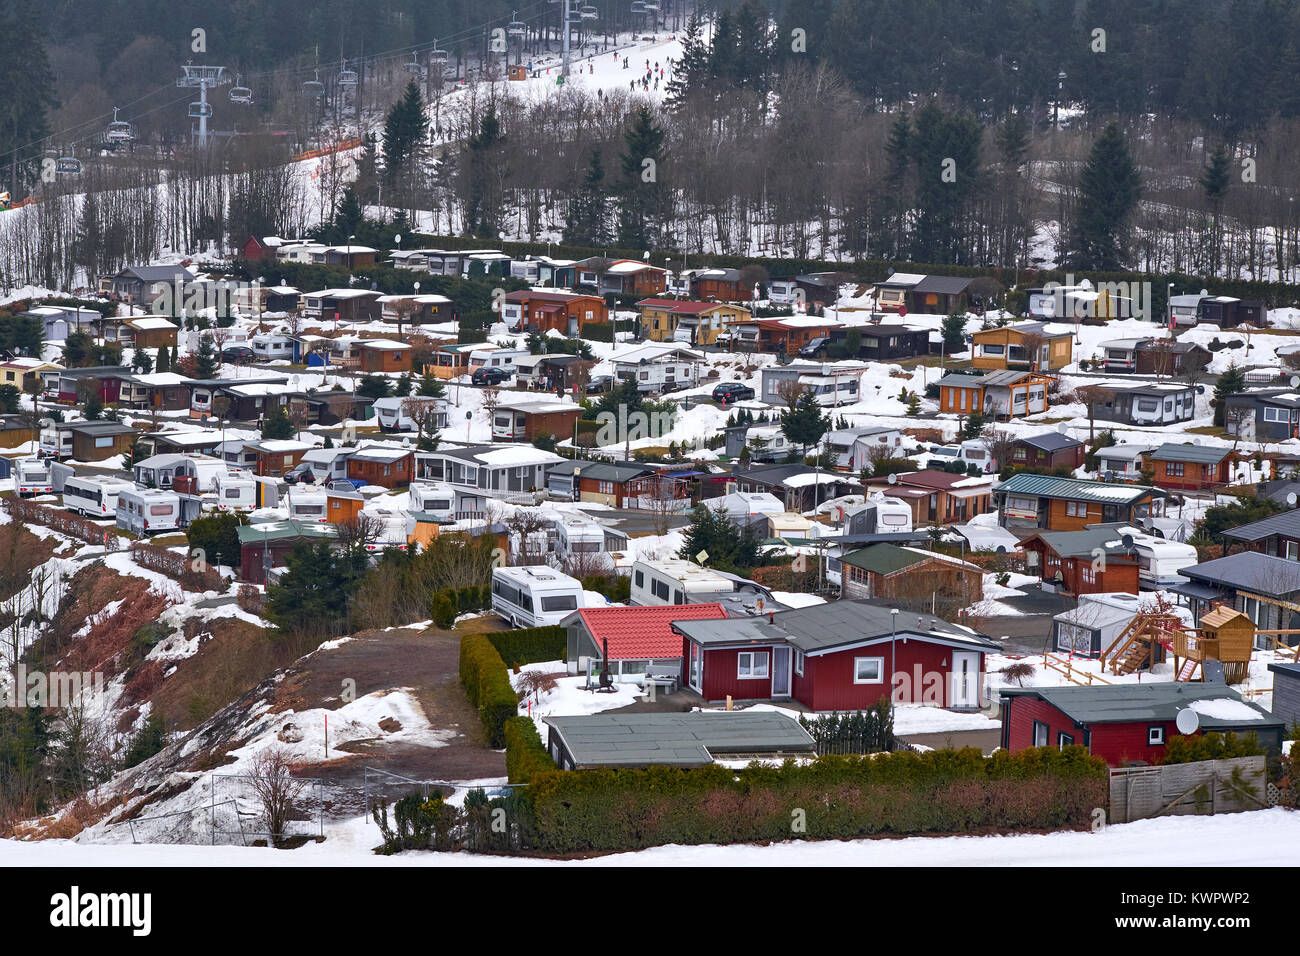 WINTERBERG, GERMANY - FEBRUARY 16, 2017: Camp site with trailers and small wood cabins at Ski Carousel Winterberg - Stock Image